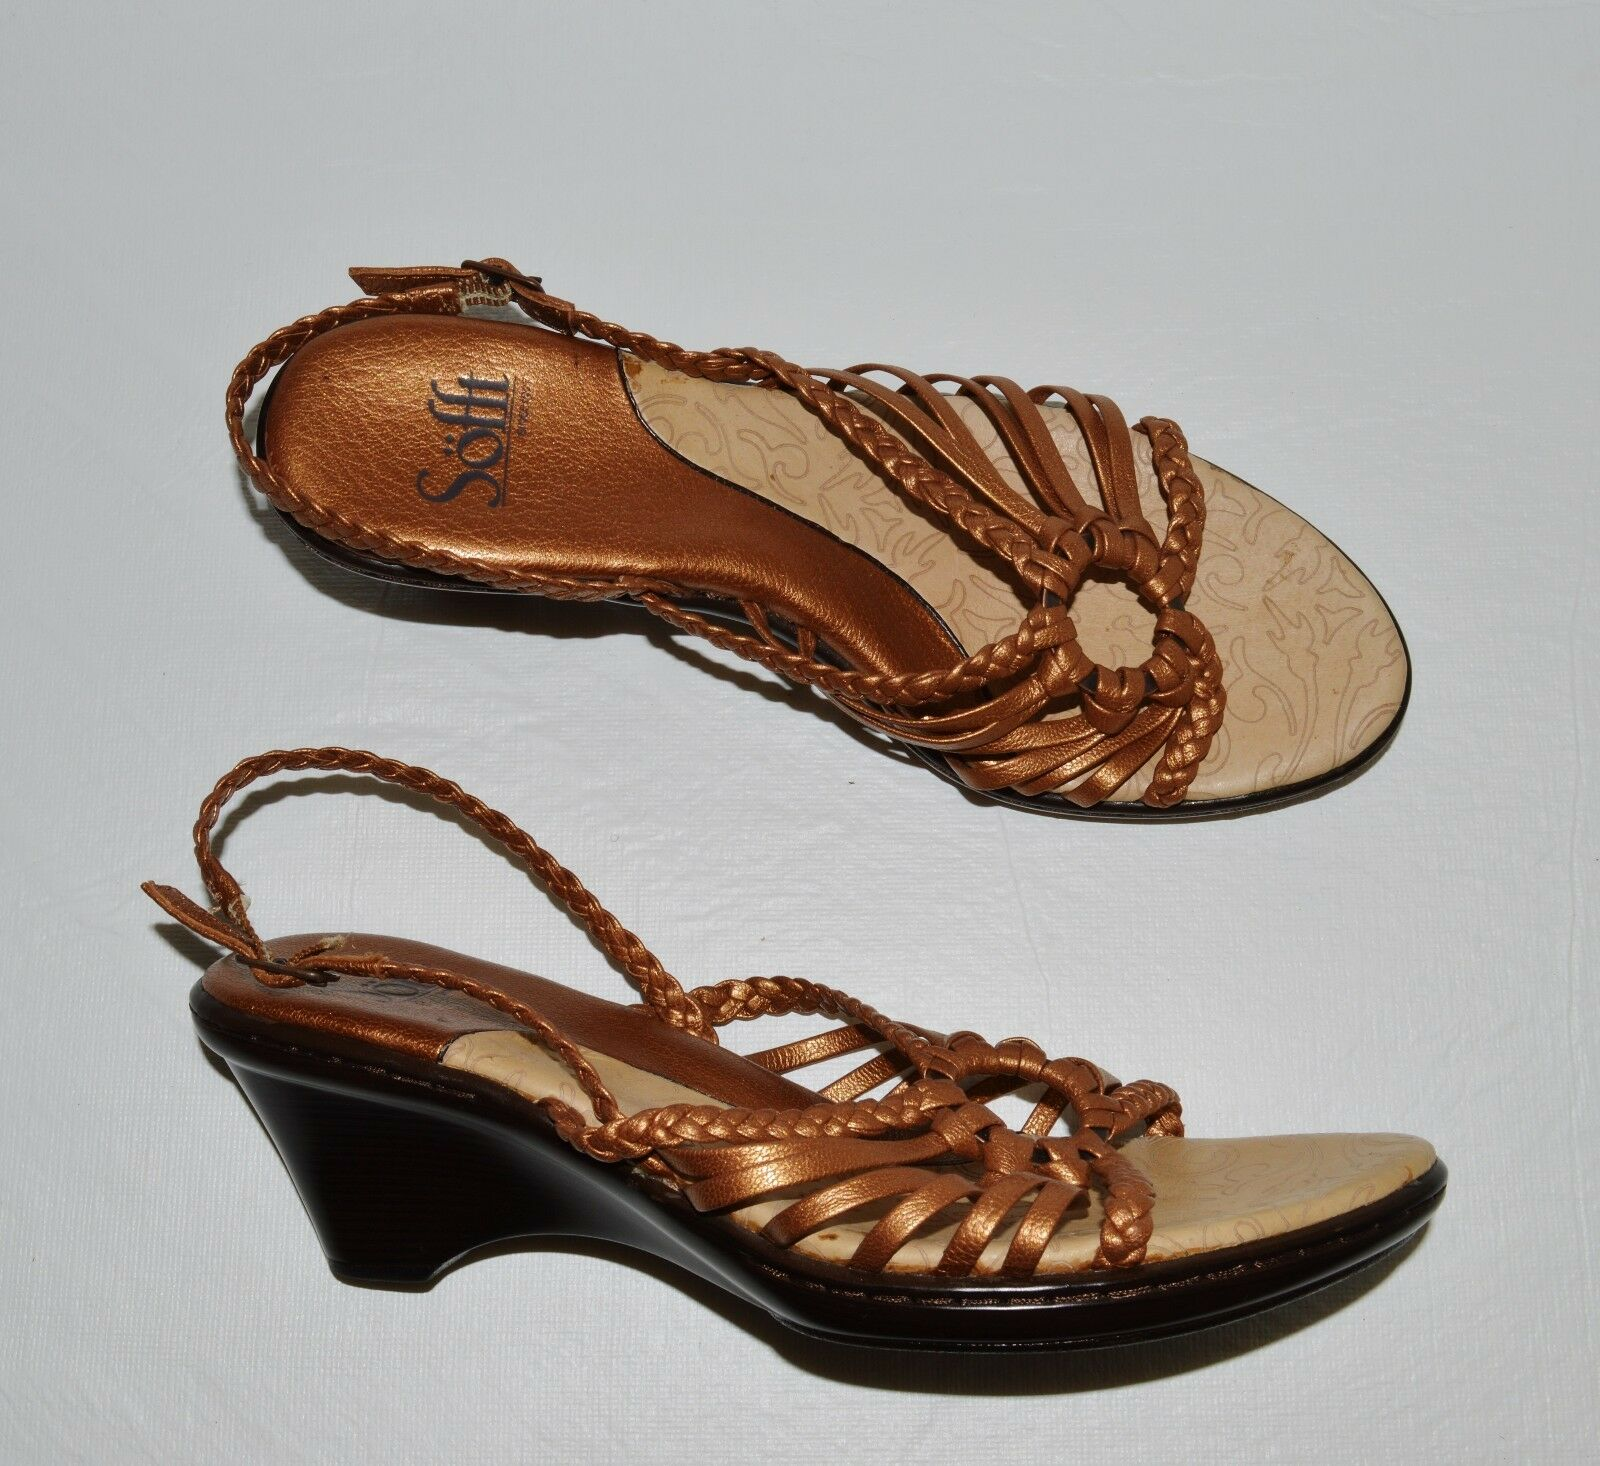 SOFFT 7 WOVEN M LIGHT METALLIC COPPER WOVEN 7 LEATHER SLINGBACK SANDALS 436825